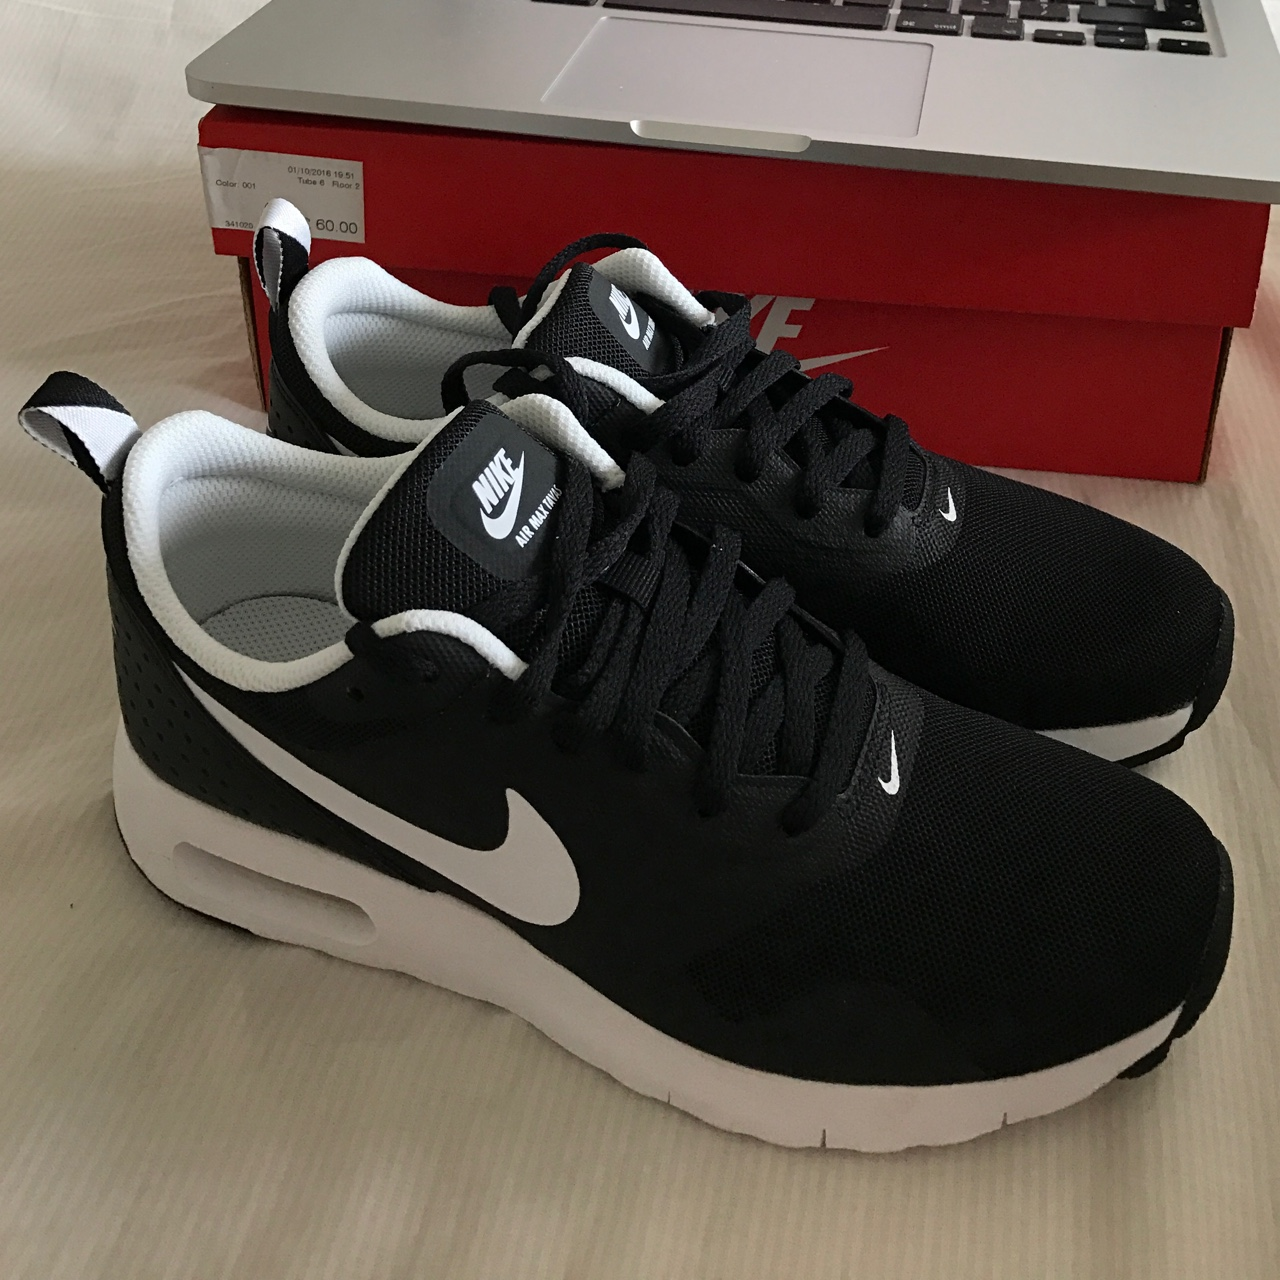 Nike Air Max Tavas (GS) blackwhite Size UK 3.5 Depop